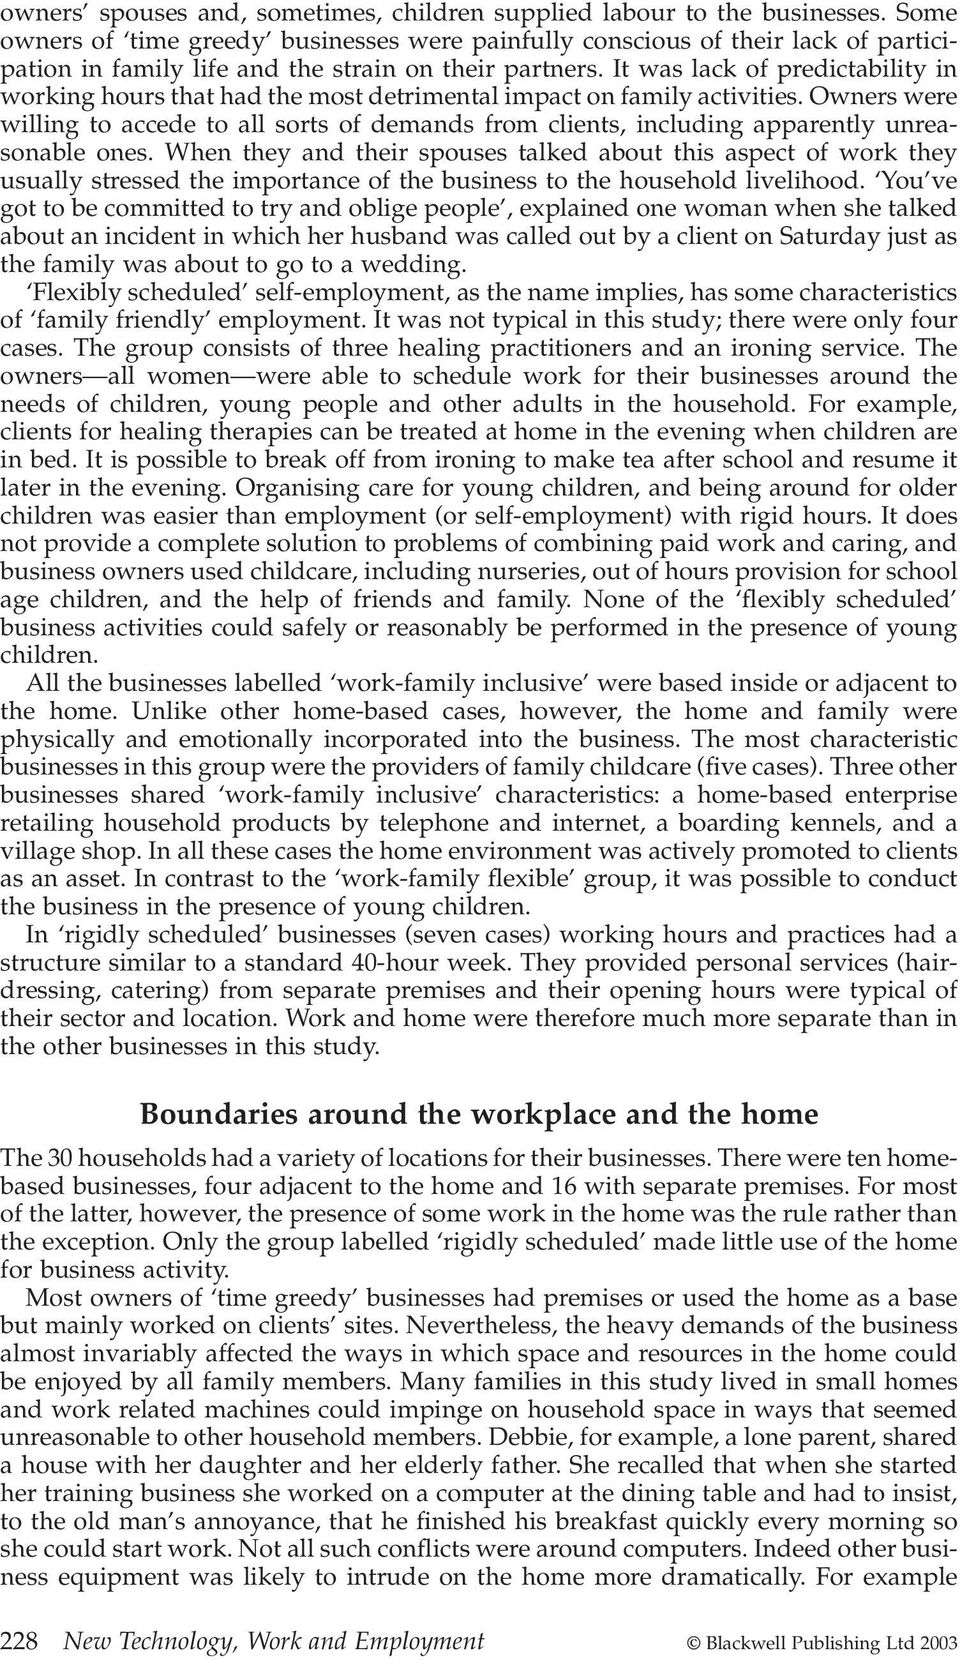 It was lack of predictability in working hours that had the most detrimental impact on family activities.